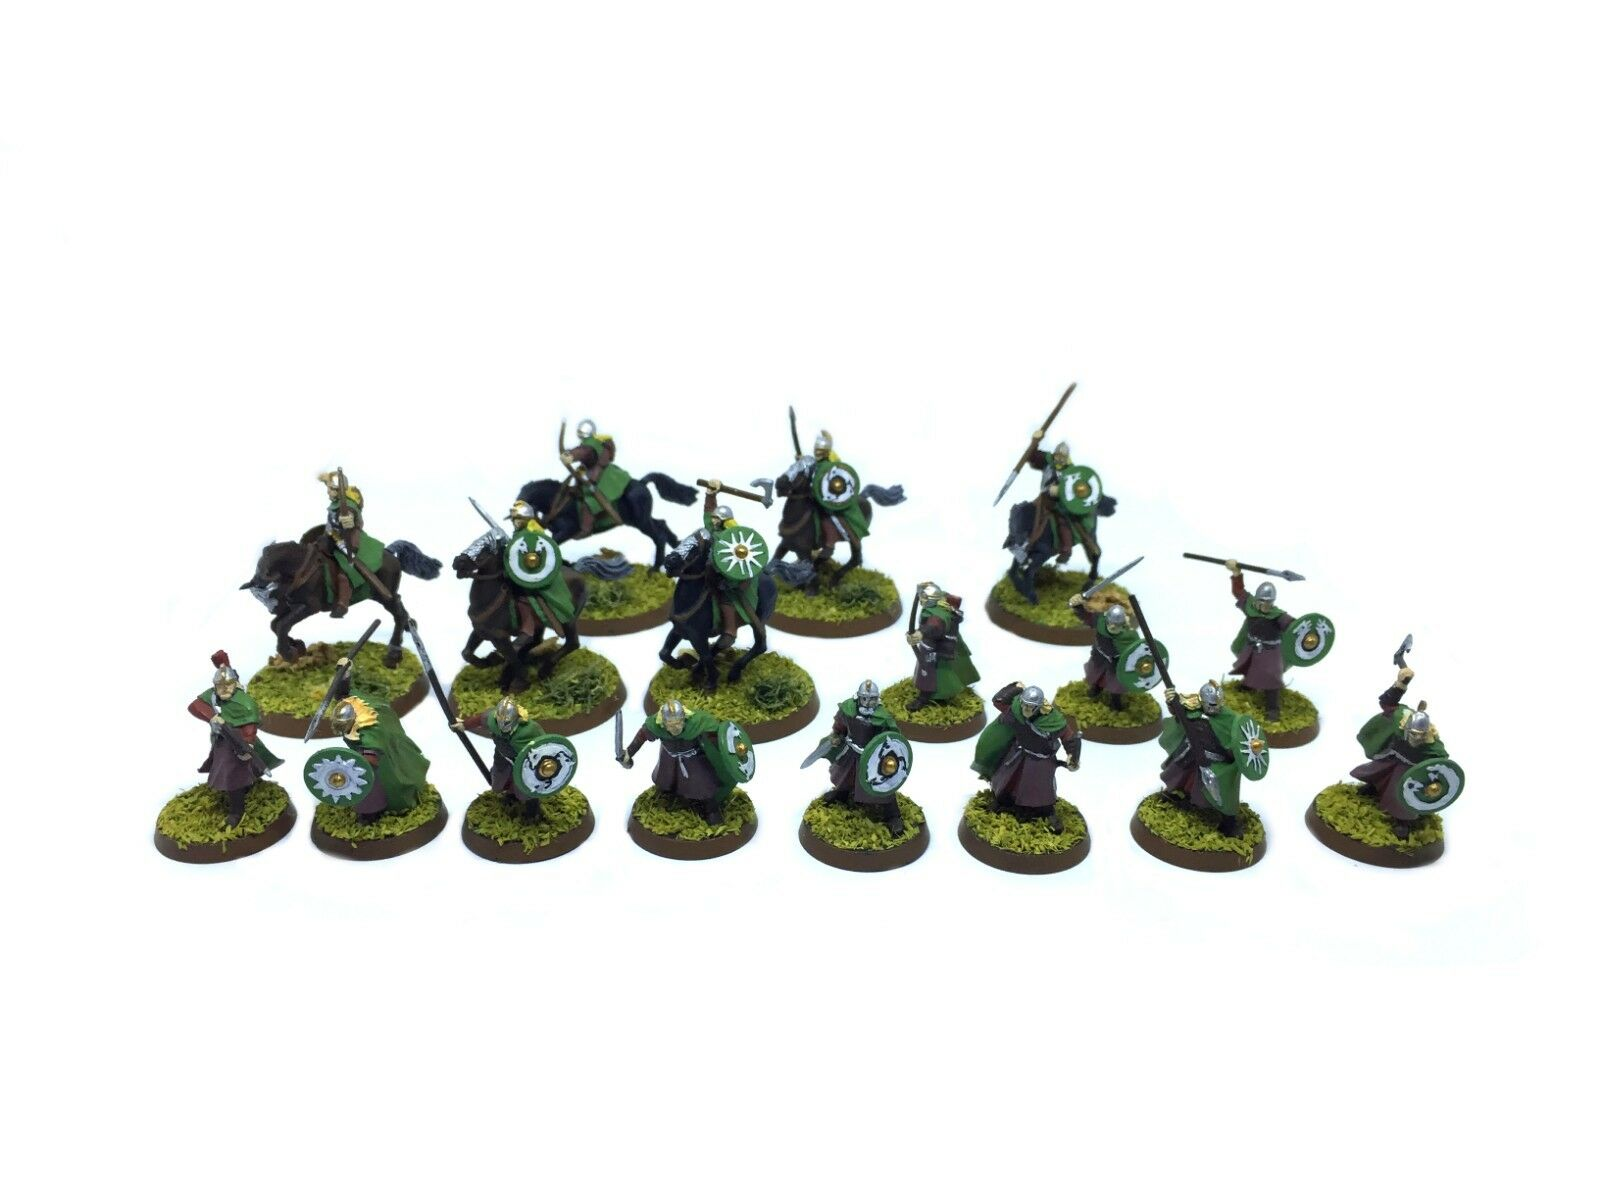 The Lord Of The Rings - Rohan Army (Painted) - 28mm